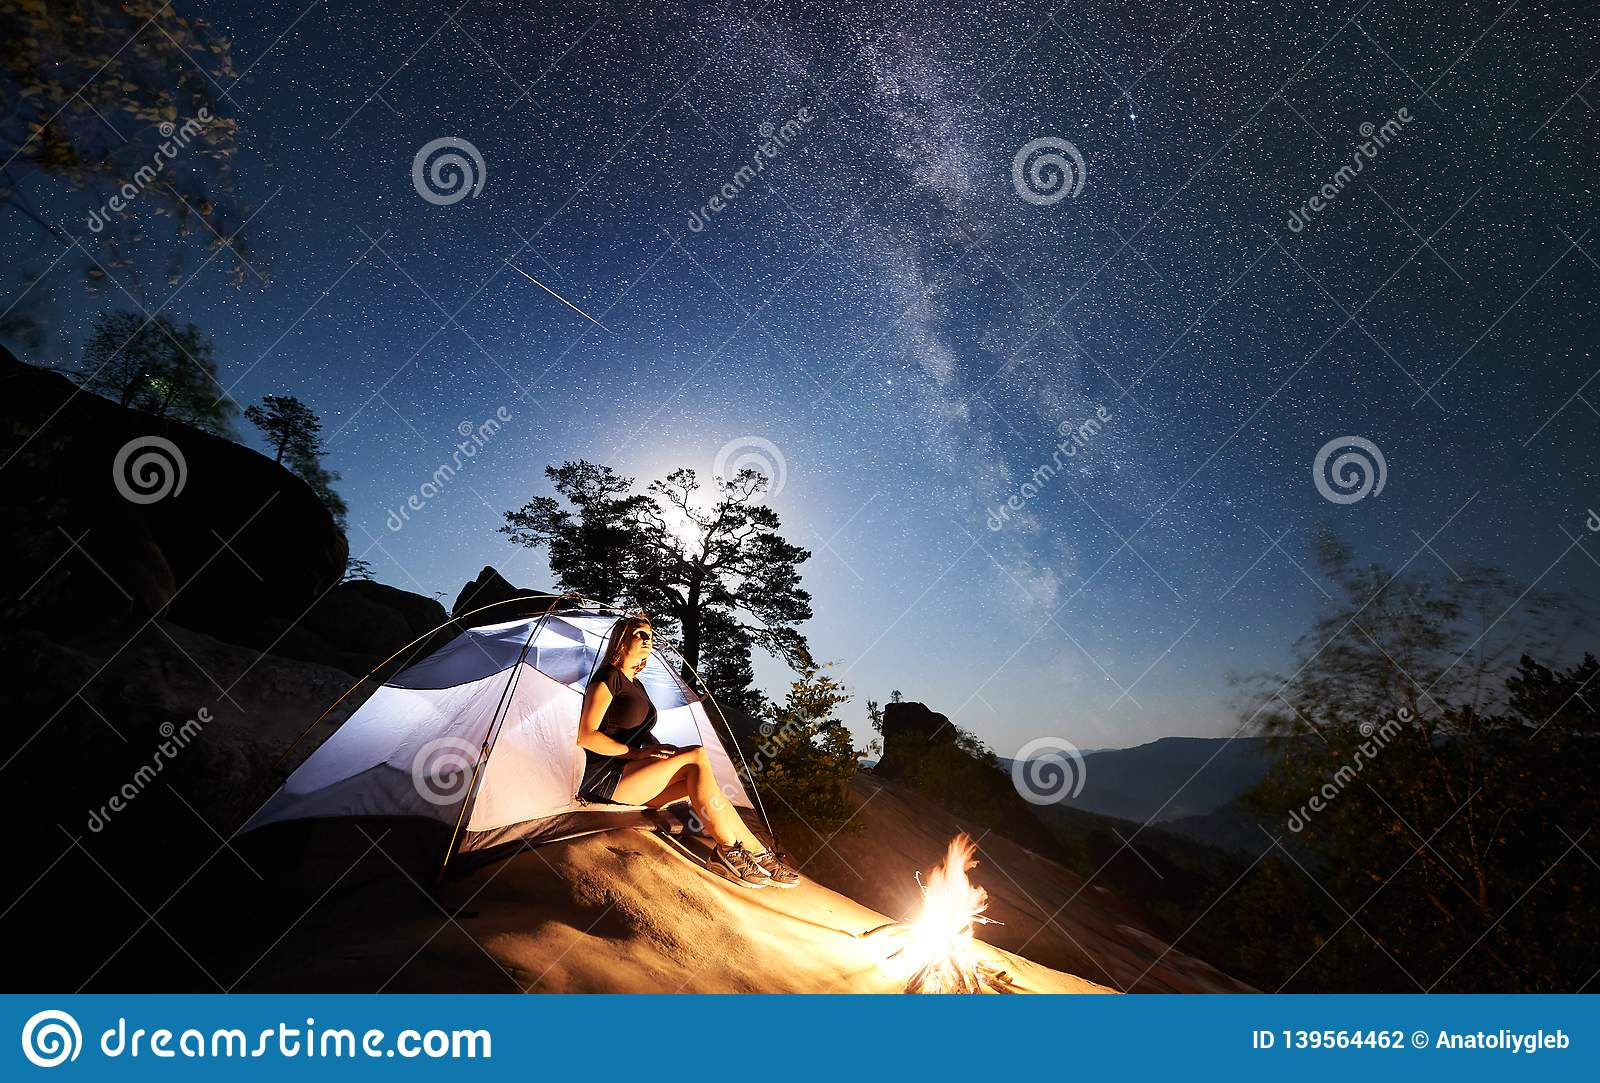 Woman resting beside camp, bonfire and tourist tent at night